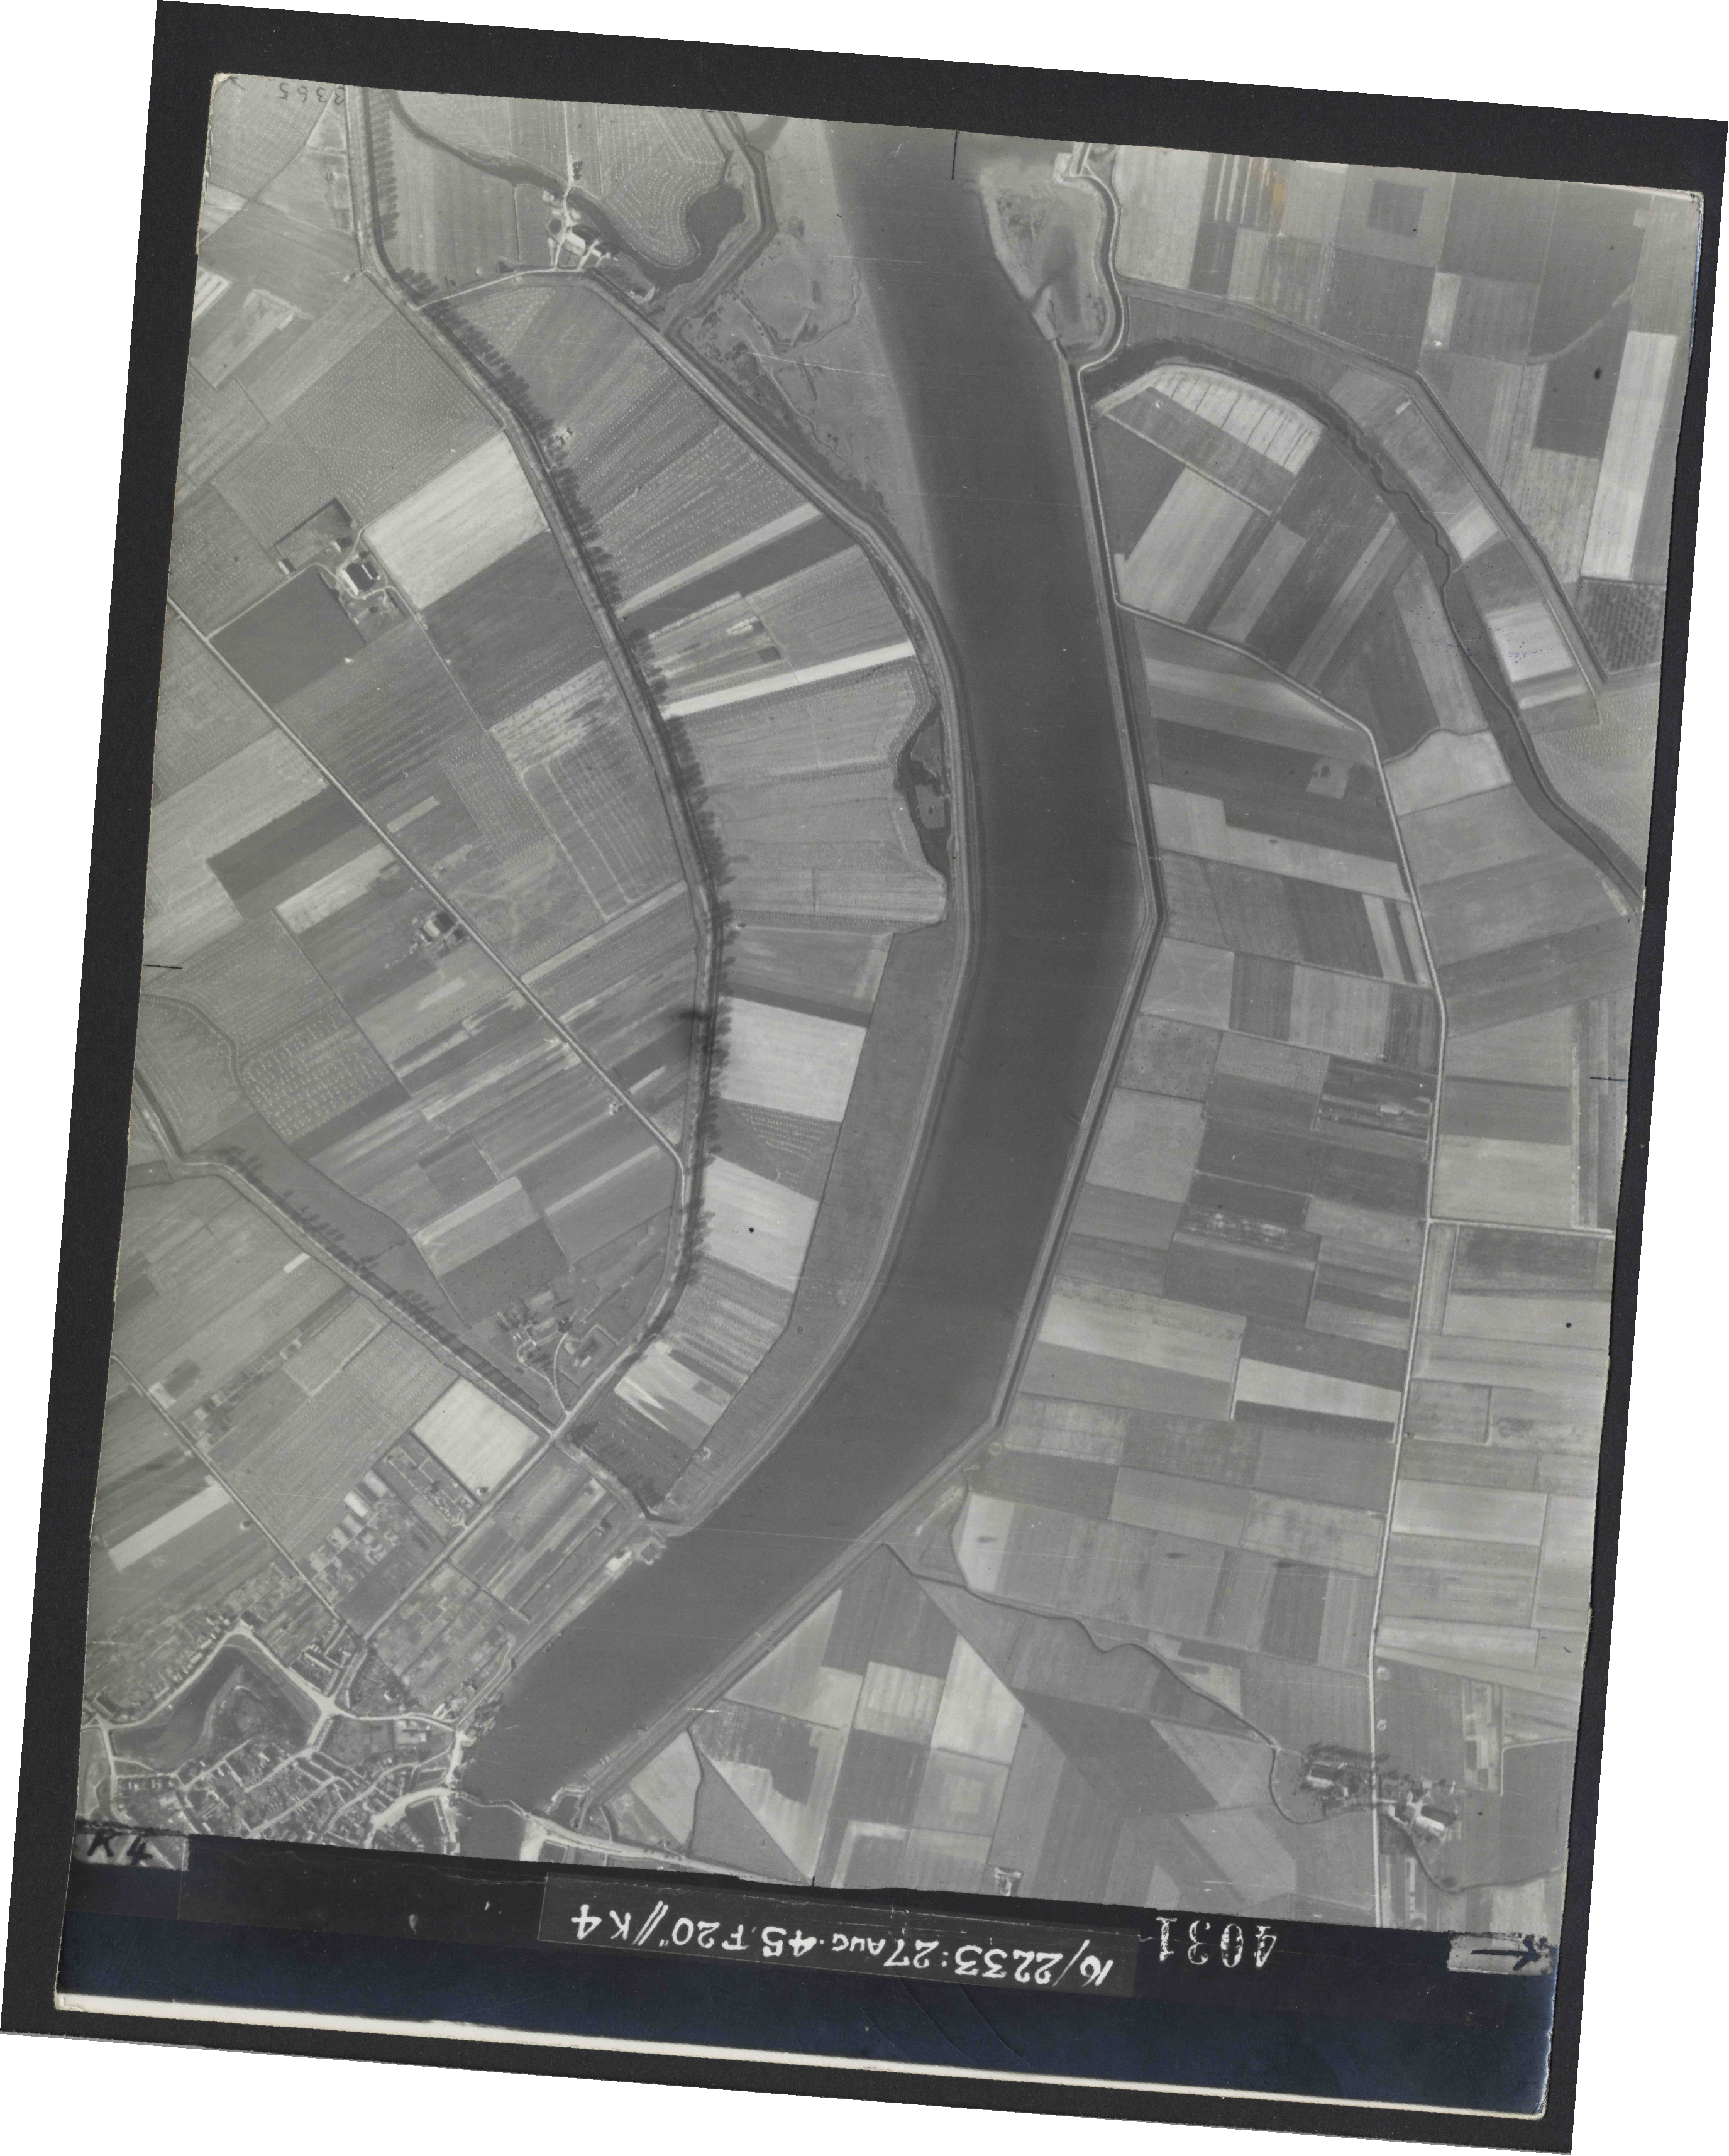 Collection RAF aerial photos 1940-1945 - flight 034, run 10, photo 4031